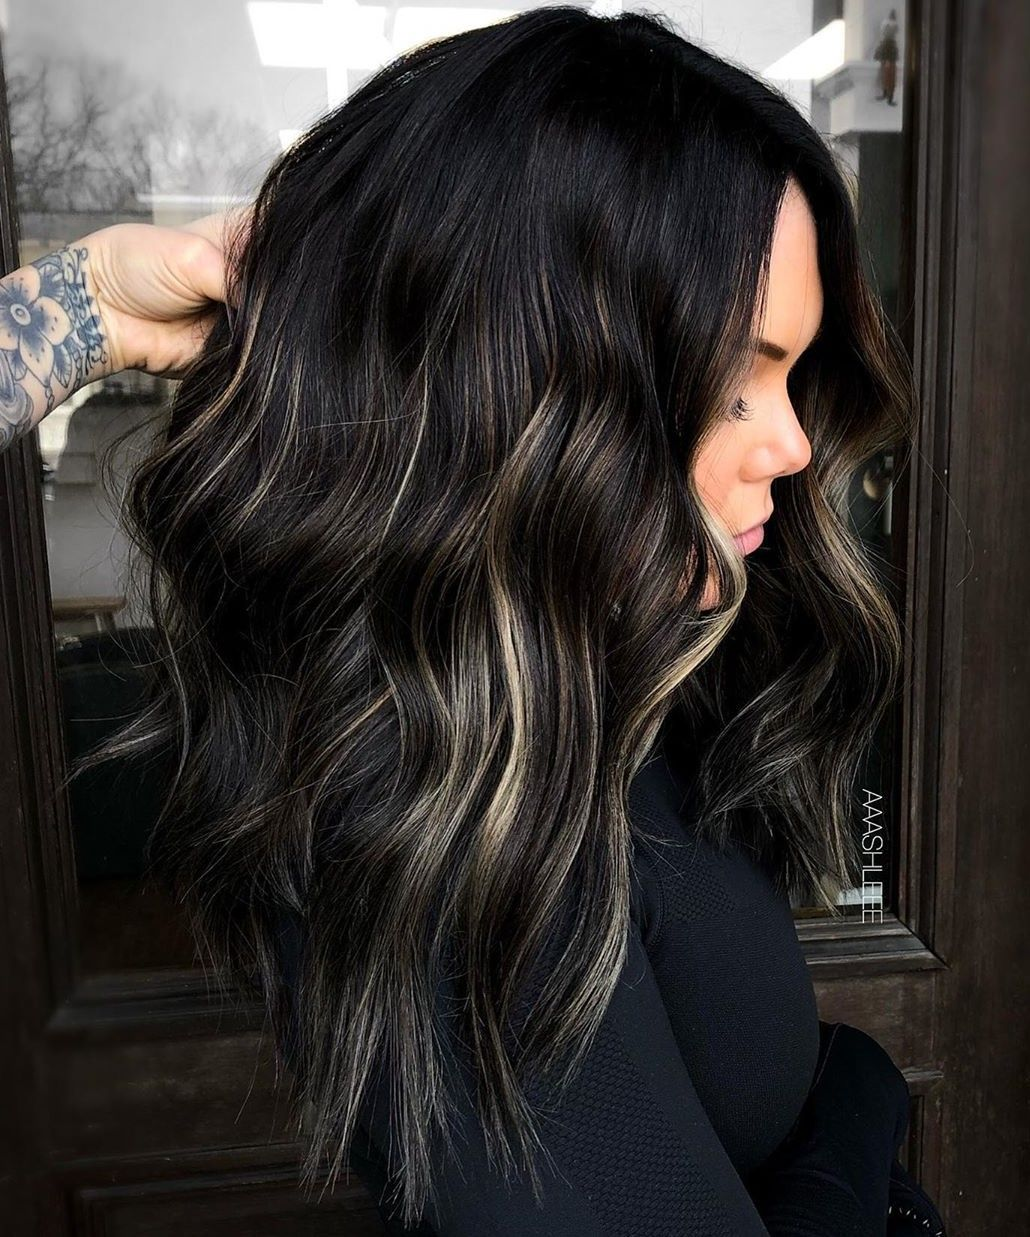 30 Ideas of Black Hair with Highlights to Rock in 2021 – Hair Adviser